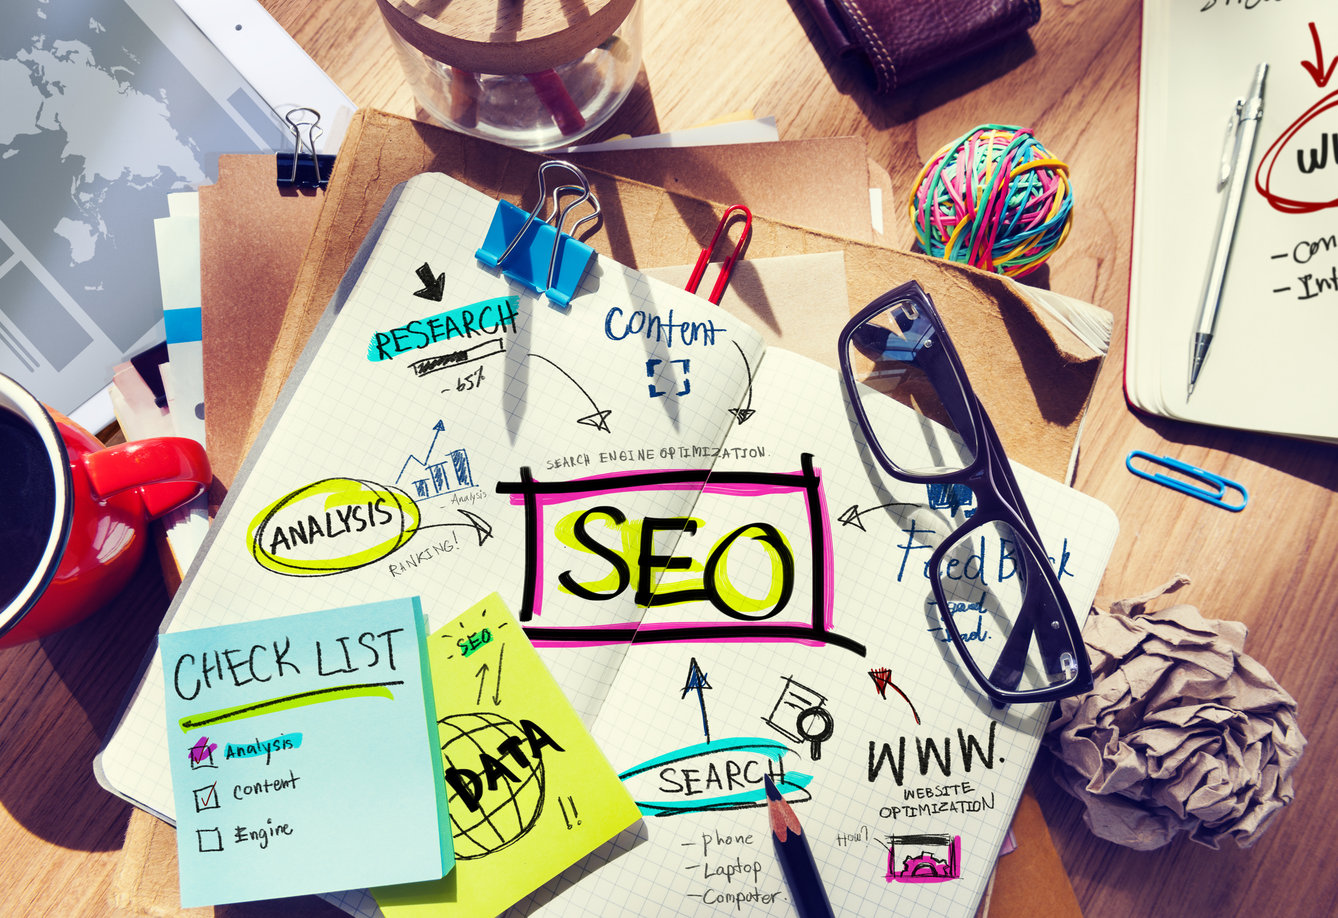 5 SEO Tactics to Increase Traffic to Your Website: Part 2